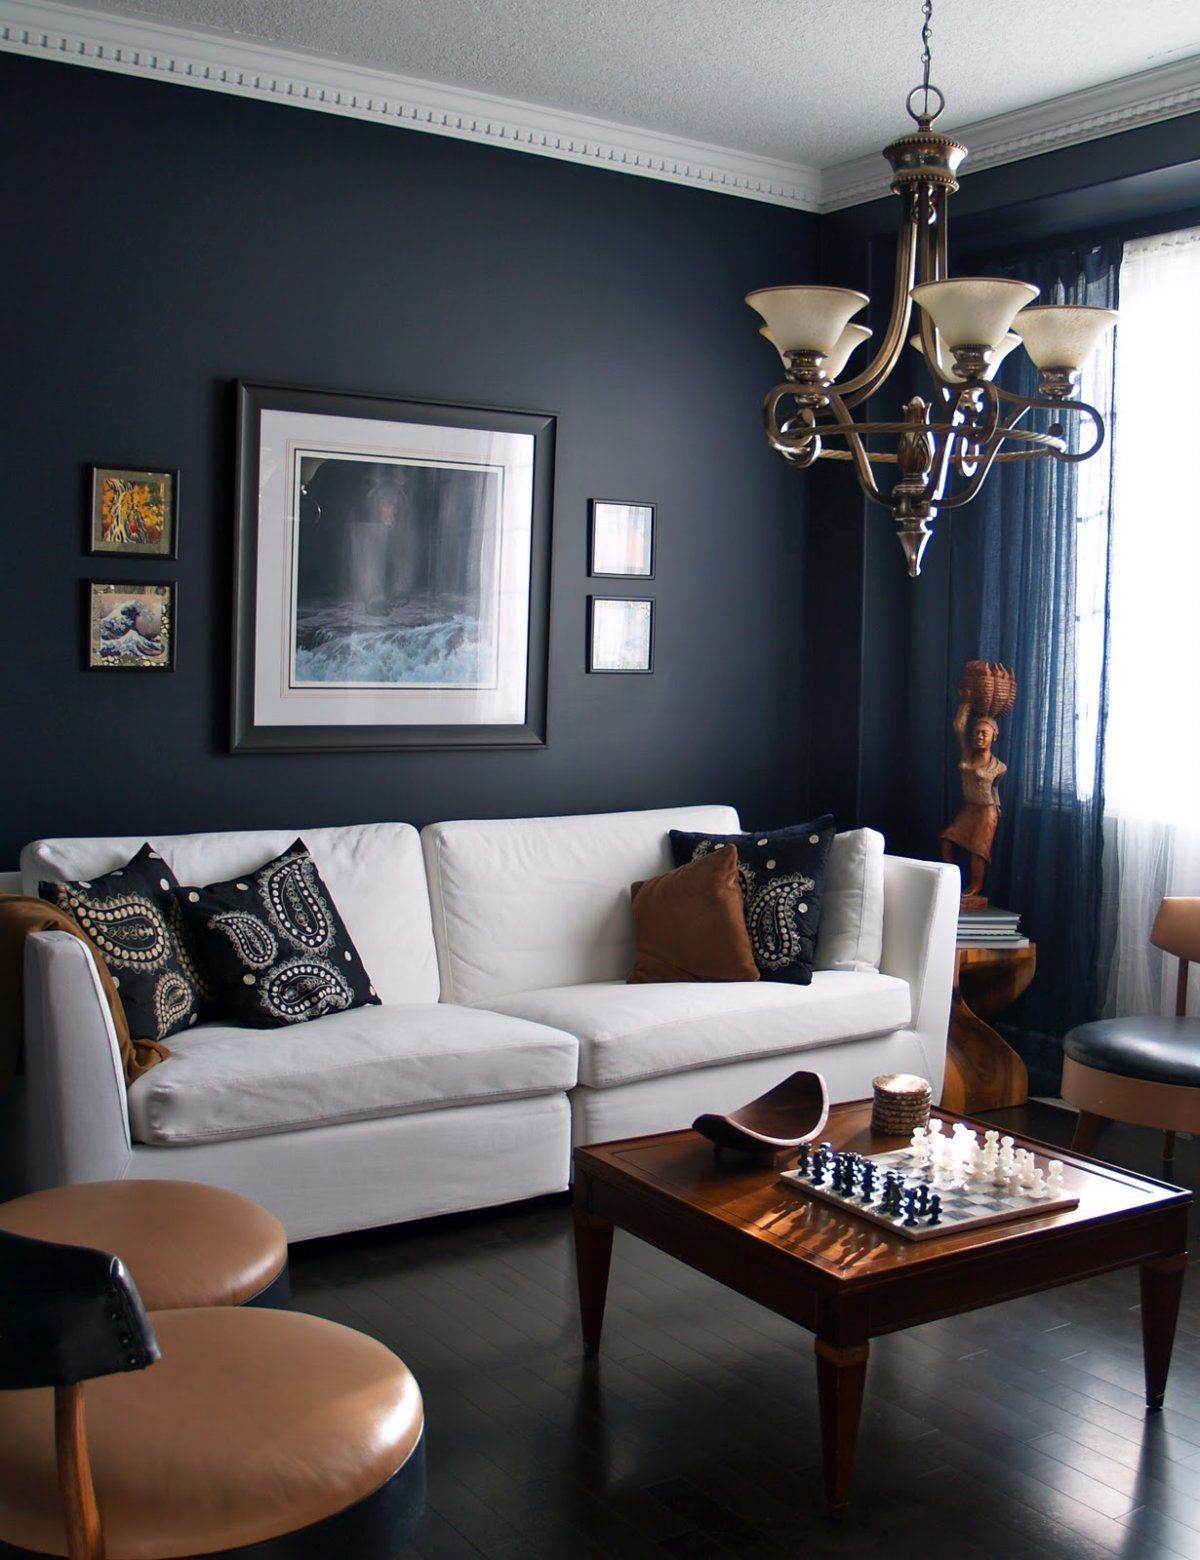 15 Beautiful Dark Blue Wall Design Ideas With Images Dark